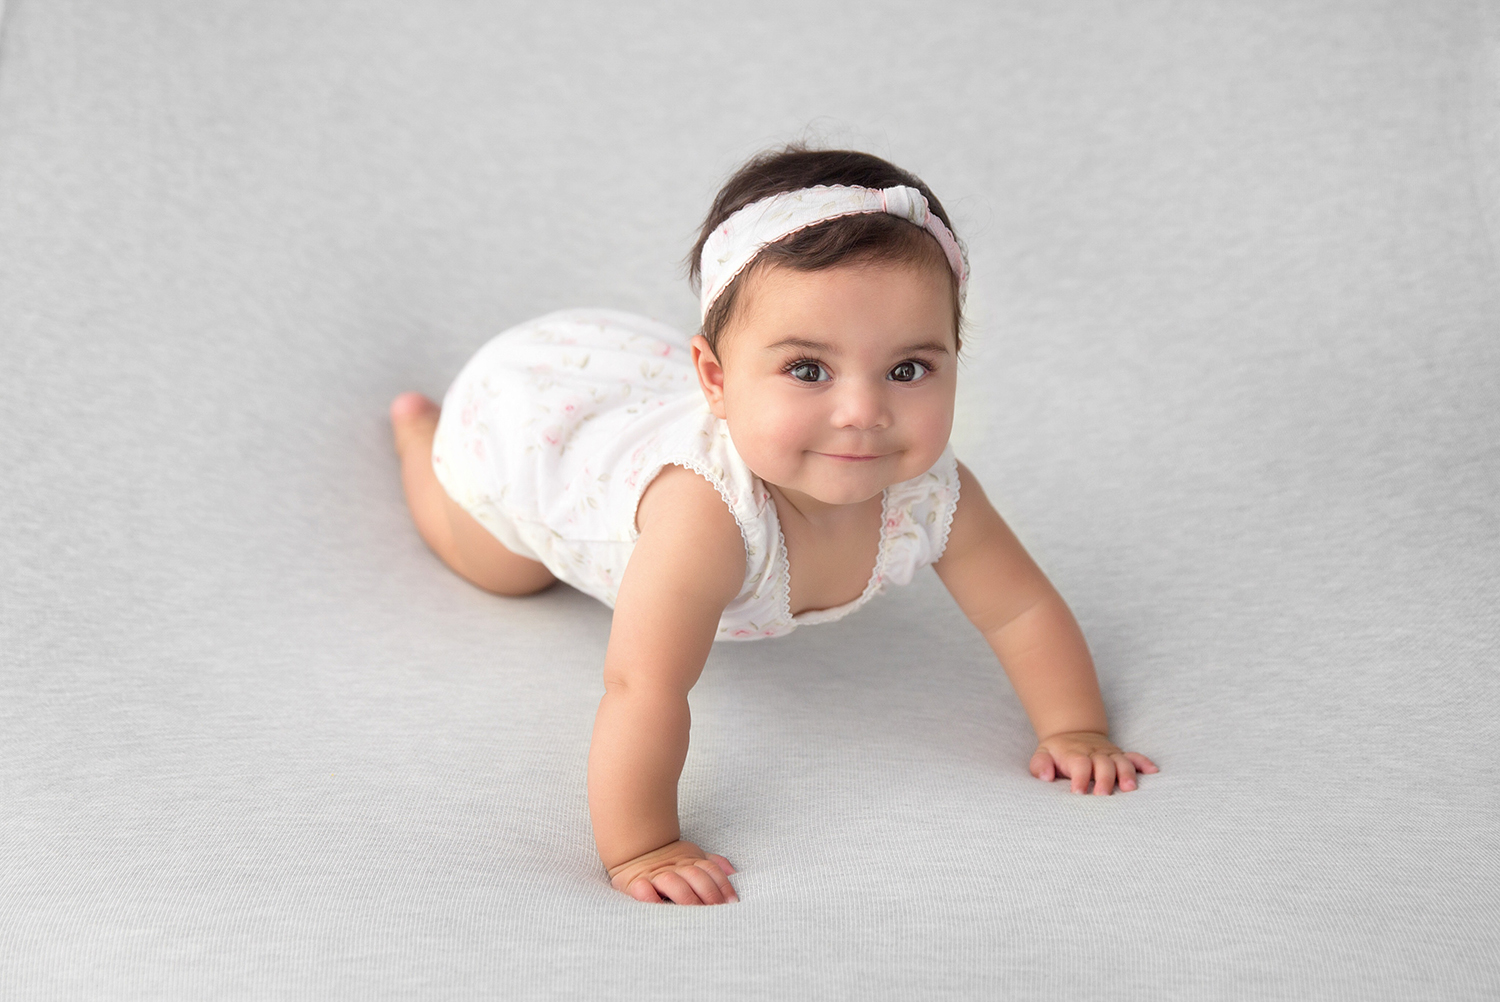 Ale's 6 month photoshoot